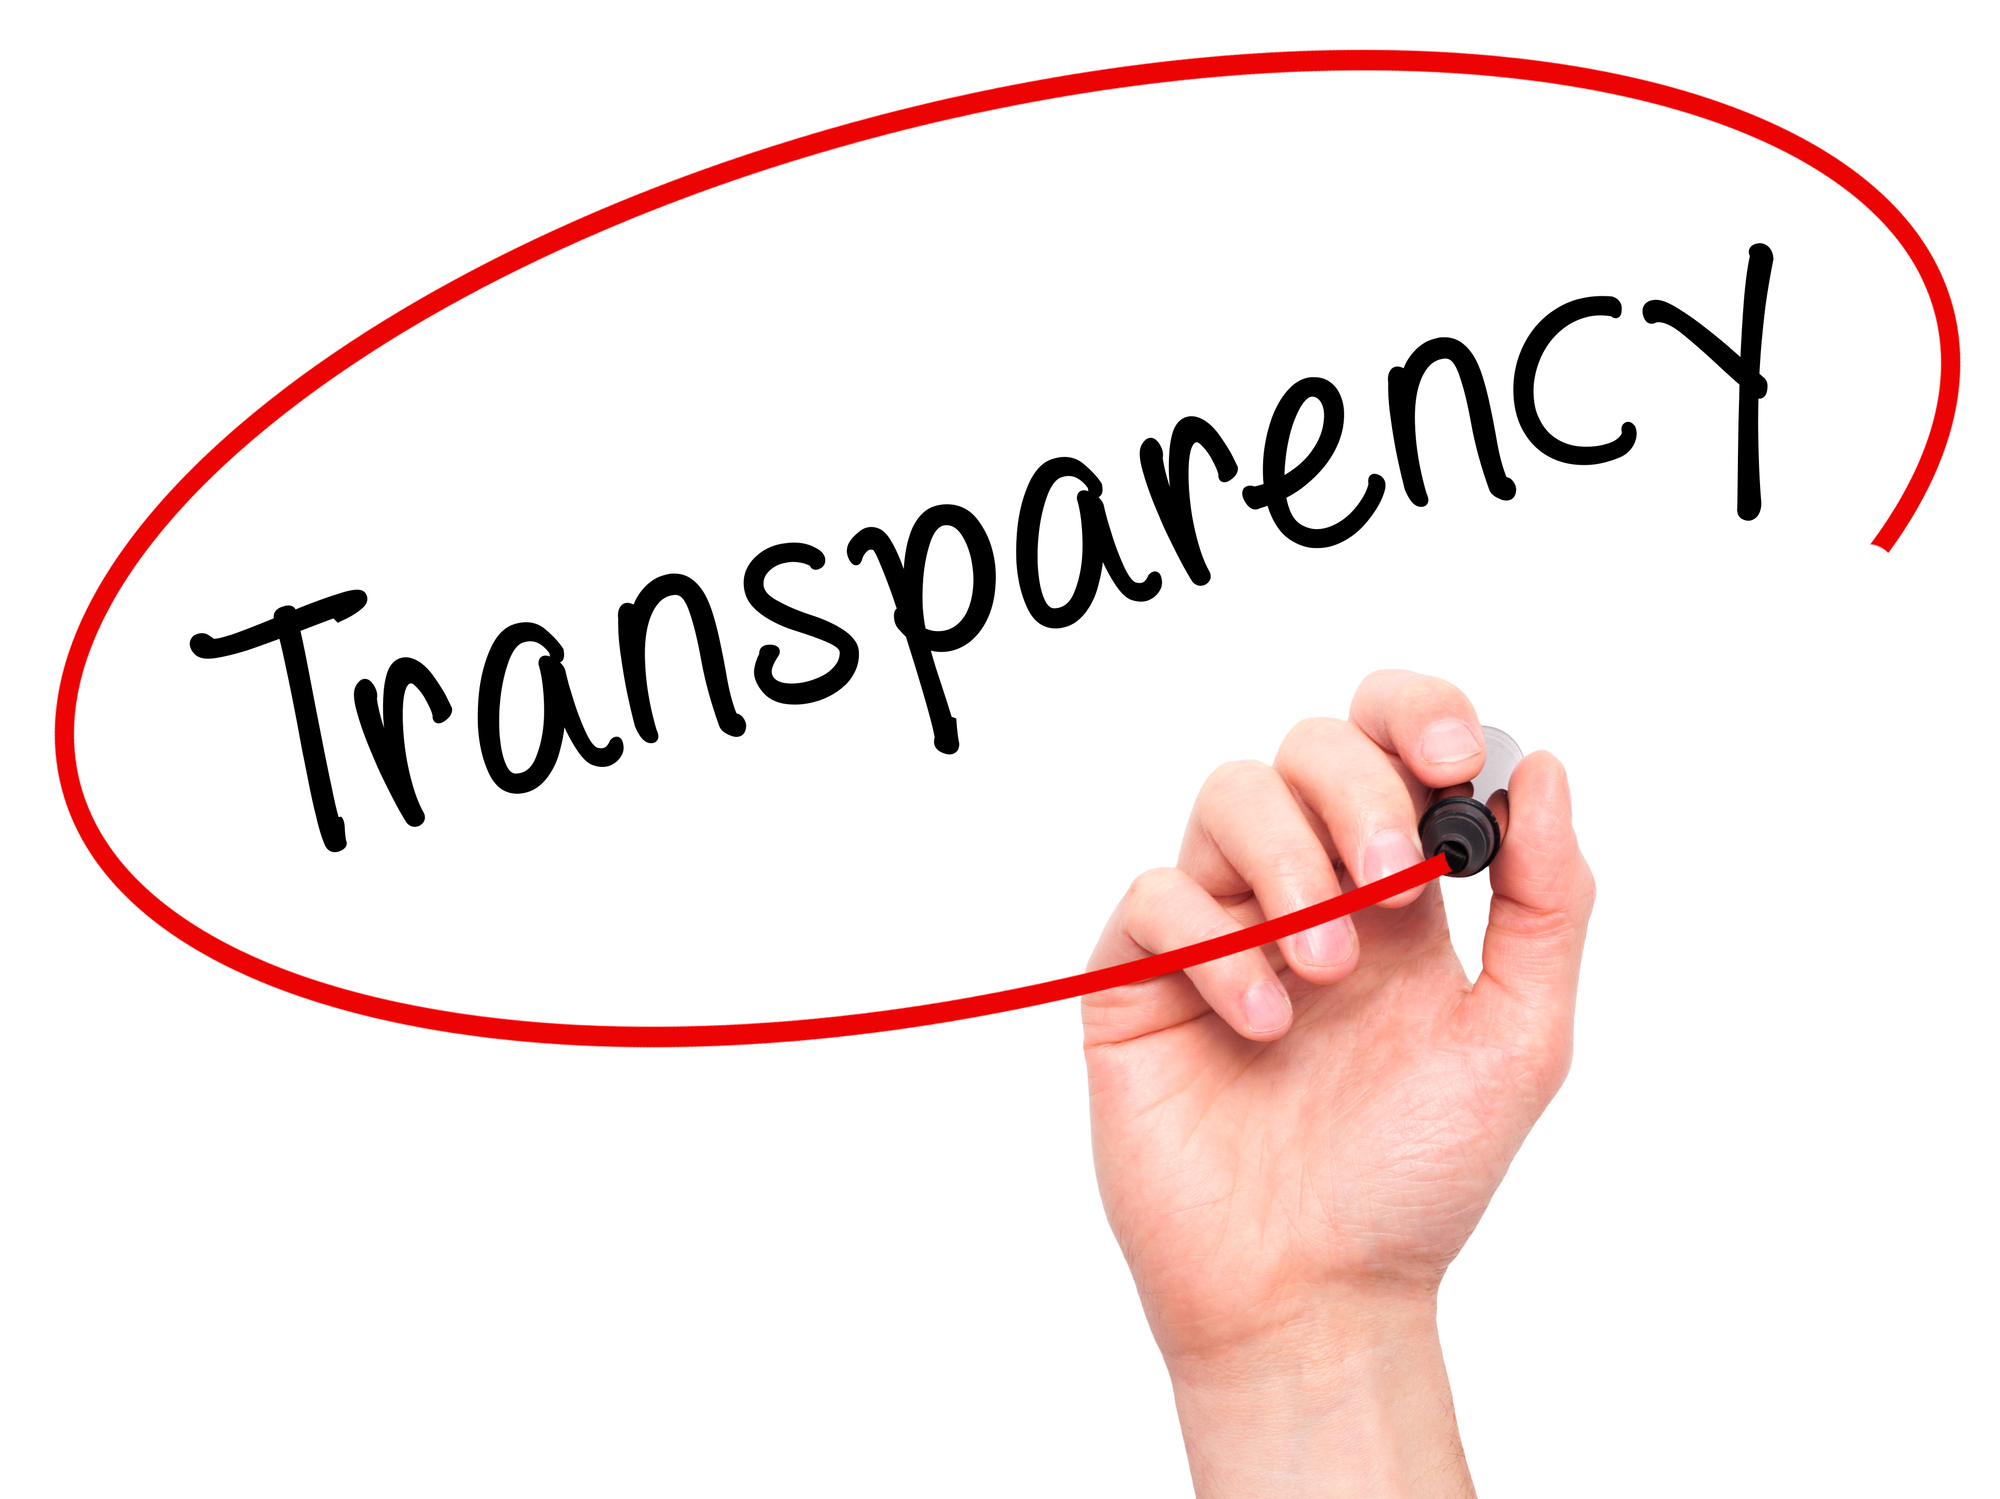 Travel intermediaries need transparency to restore consumer confidence